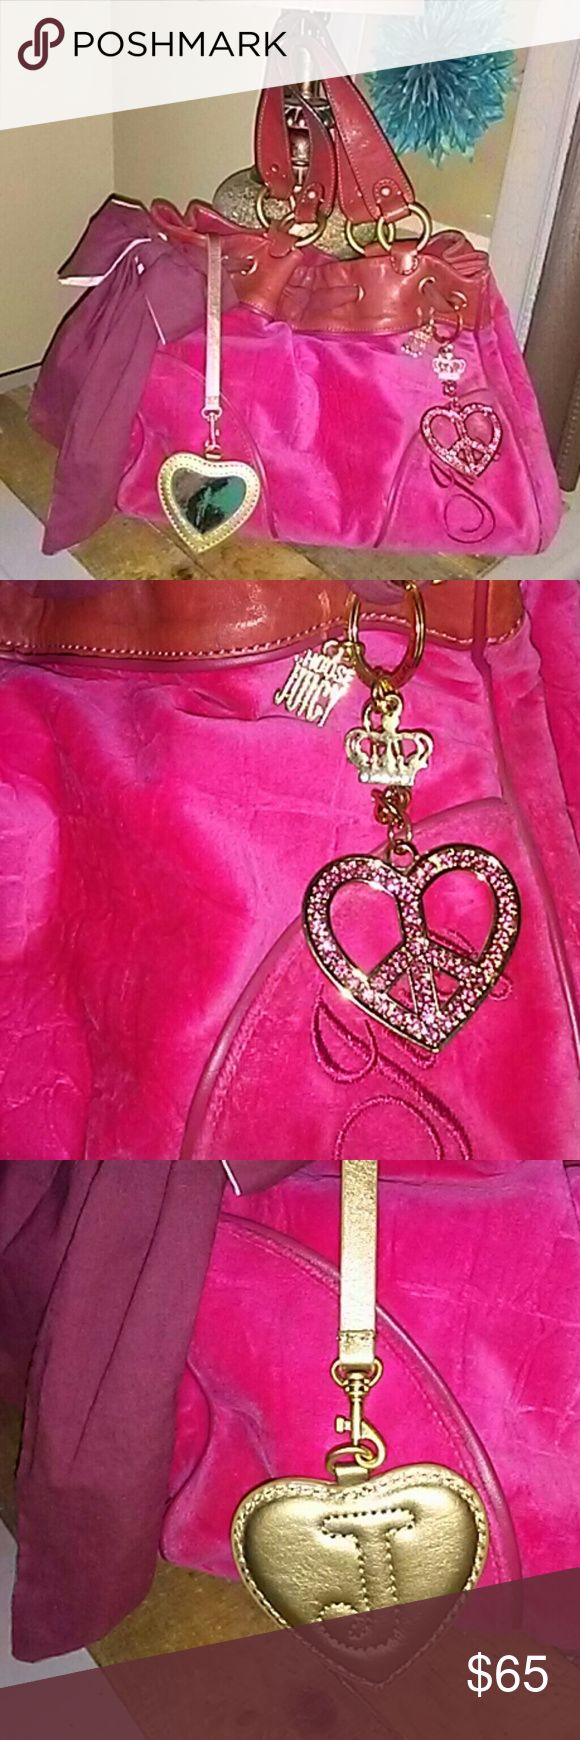 Authentic Juicy Couture Handbag Lucious. Hot Pink Velour Handbag with Brick red genuine Leather trim. Adorned with JC Gold heart crystal embellished charms. Has Leather heart shaped mirror case...the mirror is a little tarnished. The fabric bow has a stain on one of its tails. Other than that It's in very good conditions.  The bag has plenty of room for all your make up...wallet etc. Has a compartment for cell plus a zipper pocket adorned with a gold chain letter J charm. Measurements are…